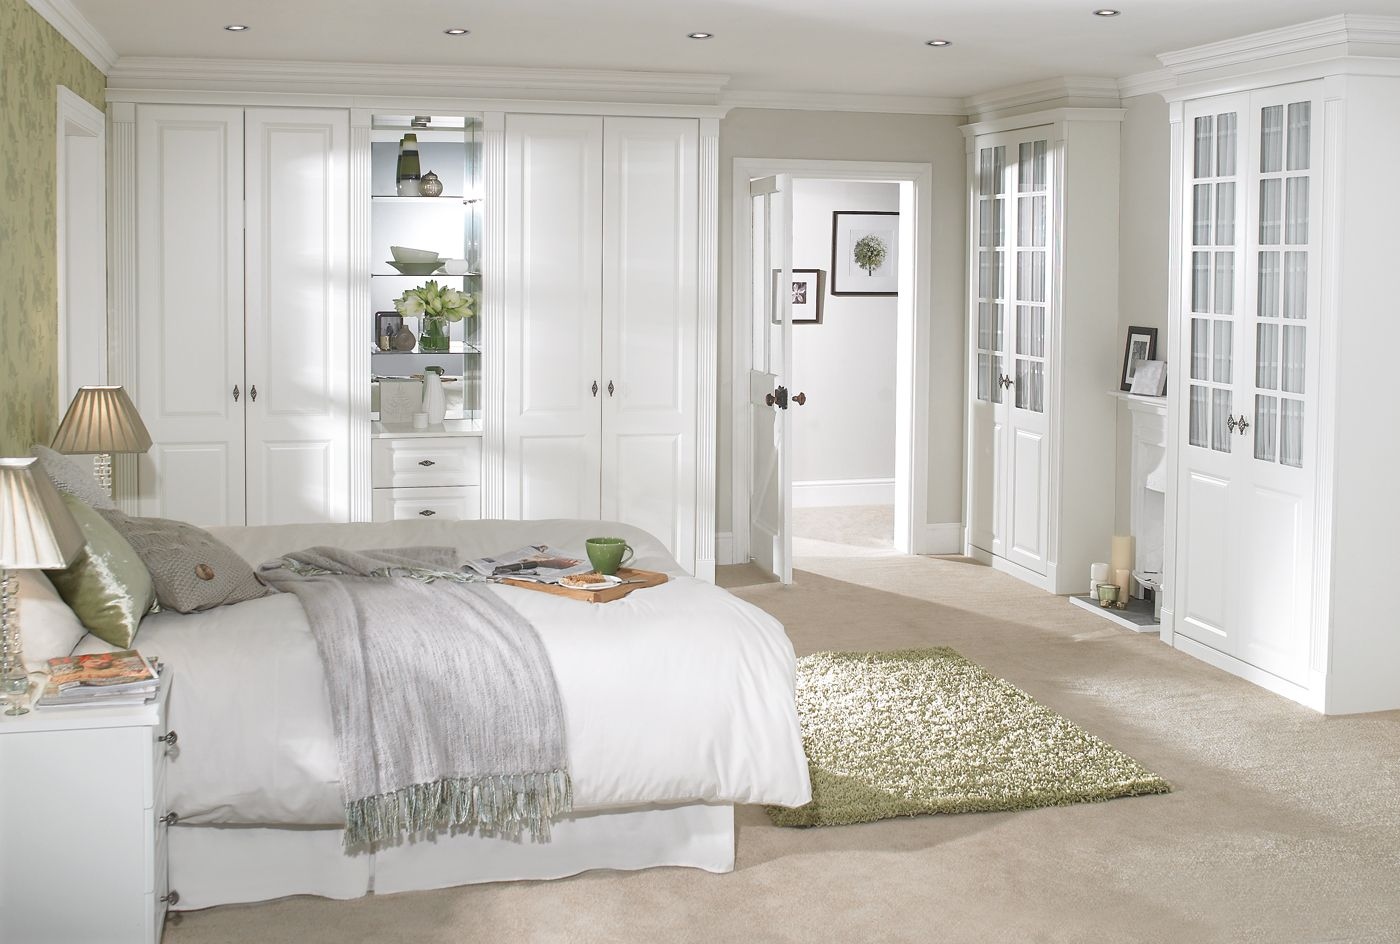 built in bedroom furniture designs. If You\u0027re Looking For Built-in Wardrobes And A Fitted Bedroom Furniture Design Built In Designs C